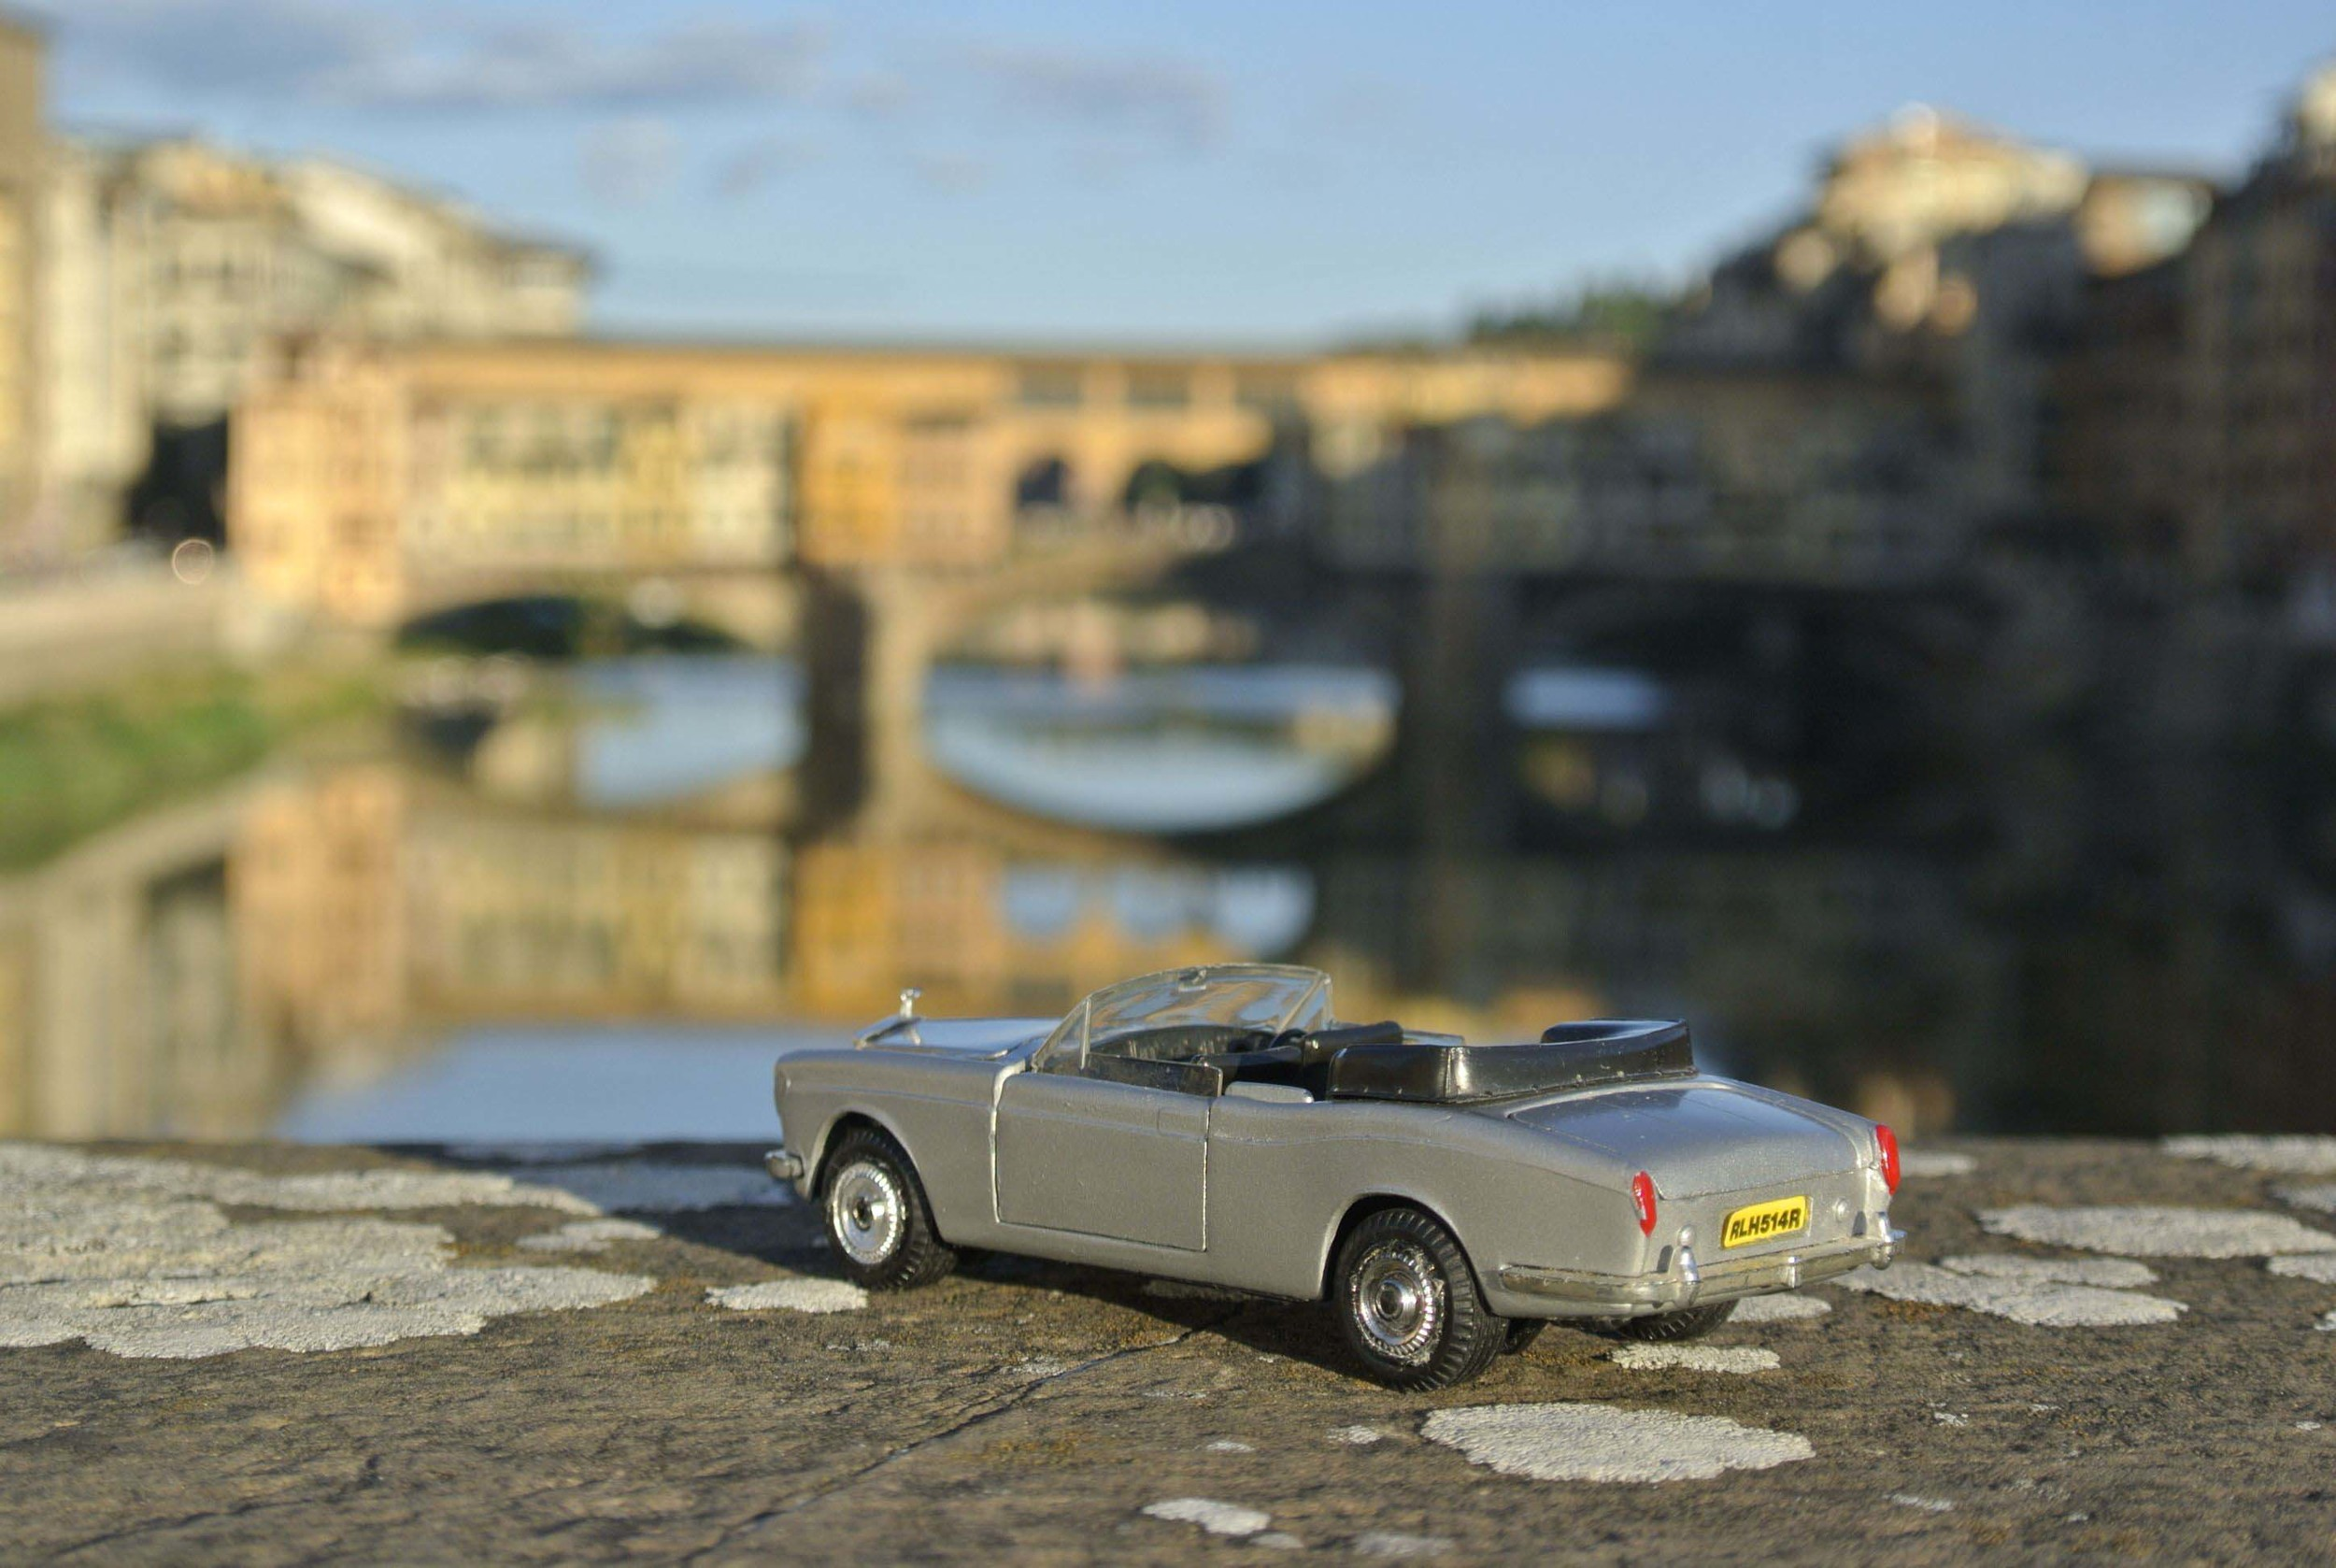 Rolls-Royce Corniche takes in the view at the Ponte Vecchio in Florence, Italy